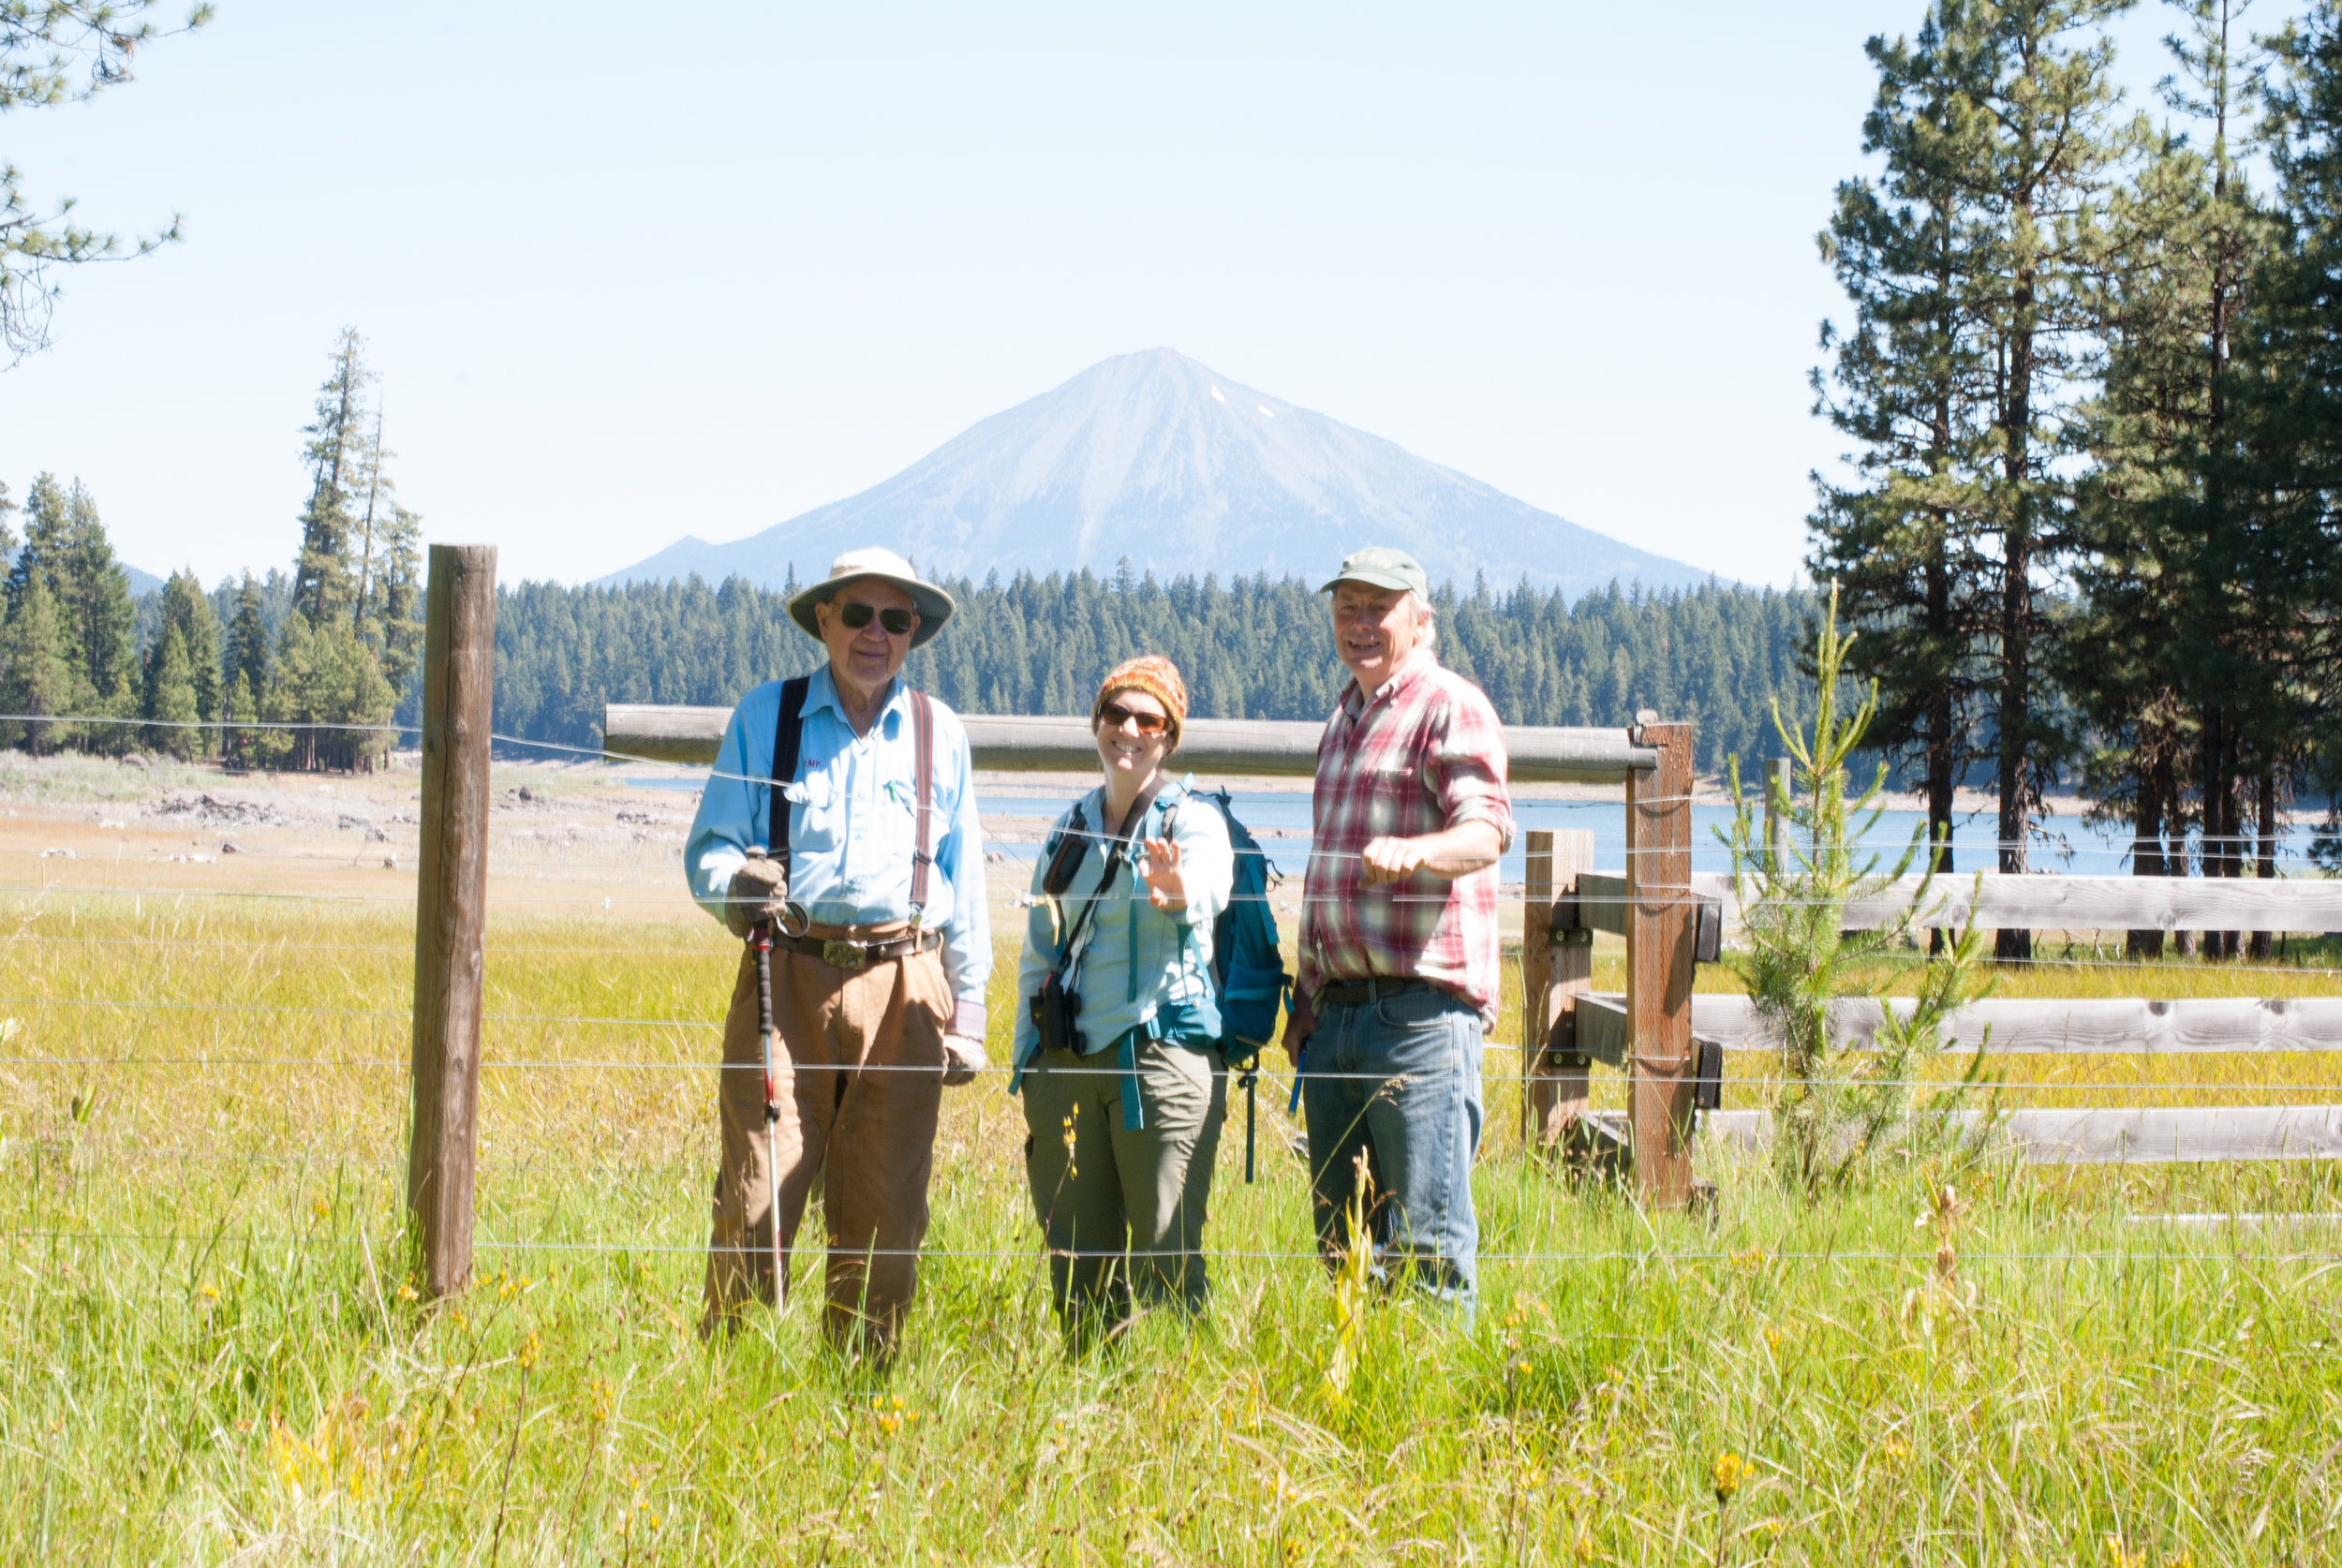 Jud Parsons, Karen Hussey, and Marty Main with Mt. McLoughlin in the background.